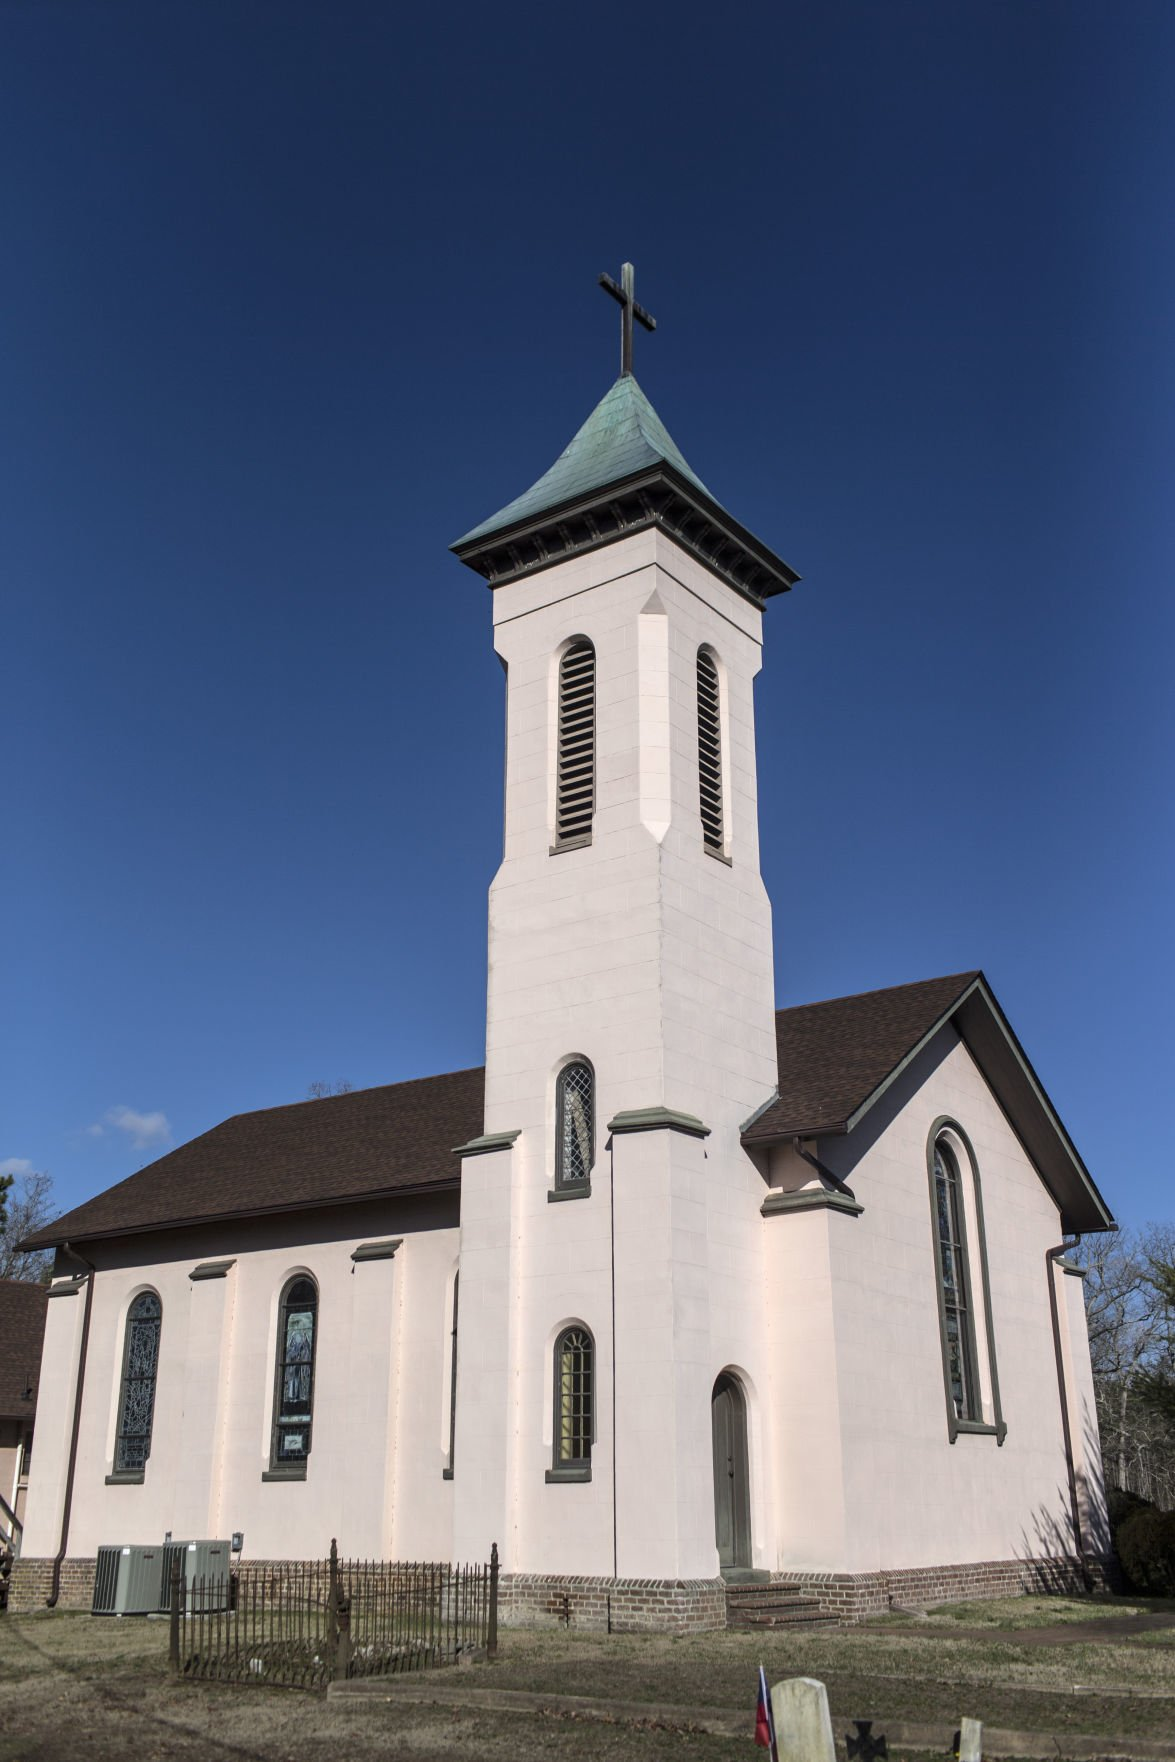 Lohmann Steeped In History Small Prince George Church Celebrates